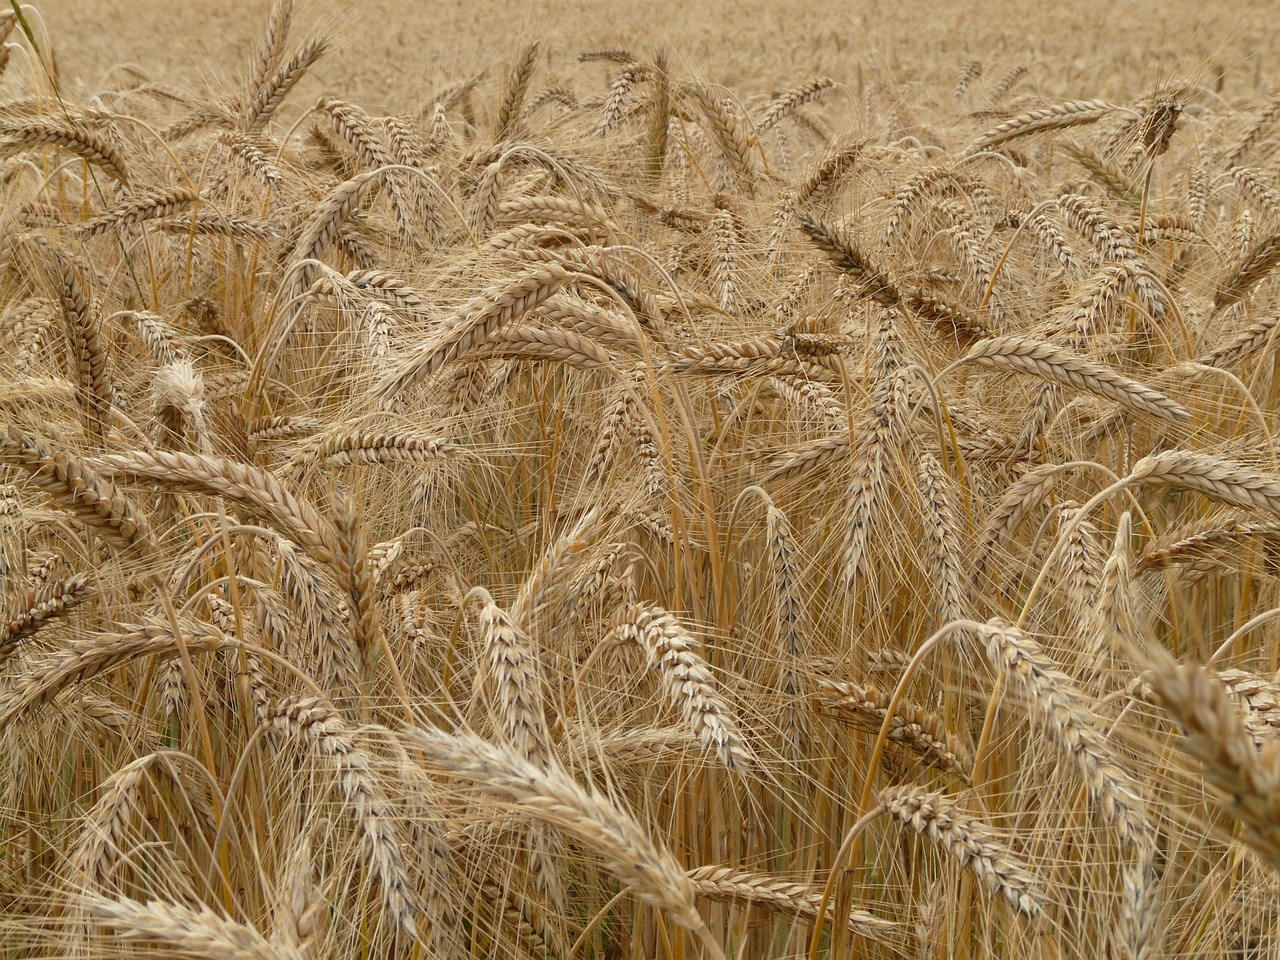 spike,rye,cereals,grain,field,rye field,cornfield,plant,nourishing rye,eat,food,arable,free pictures, free photos, free images, royalty free, free illustrations, public domain